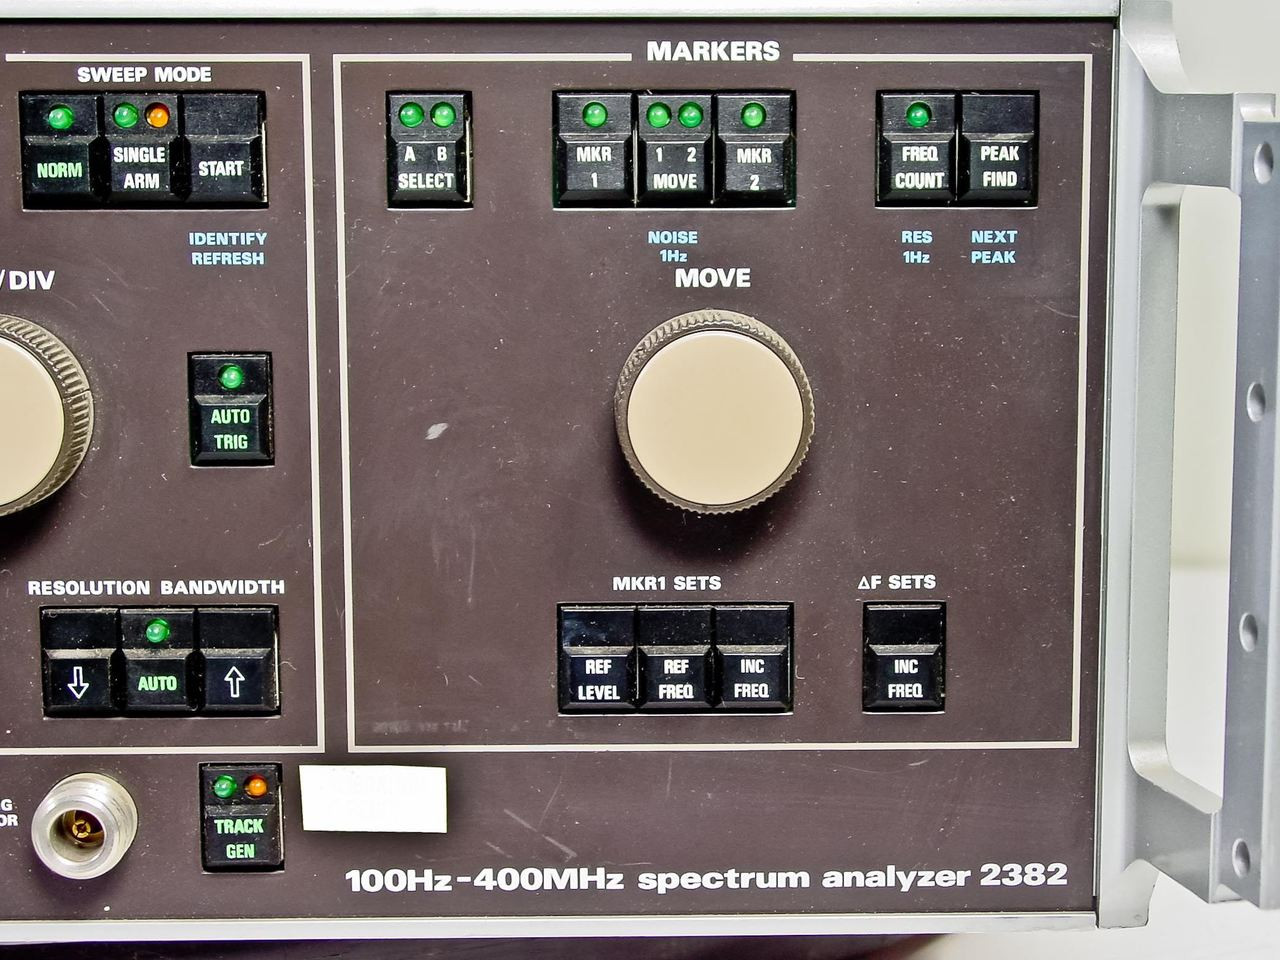 ... Marconi 2380 / 2382 400MHz Spectrum Analyzer with TG ...